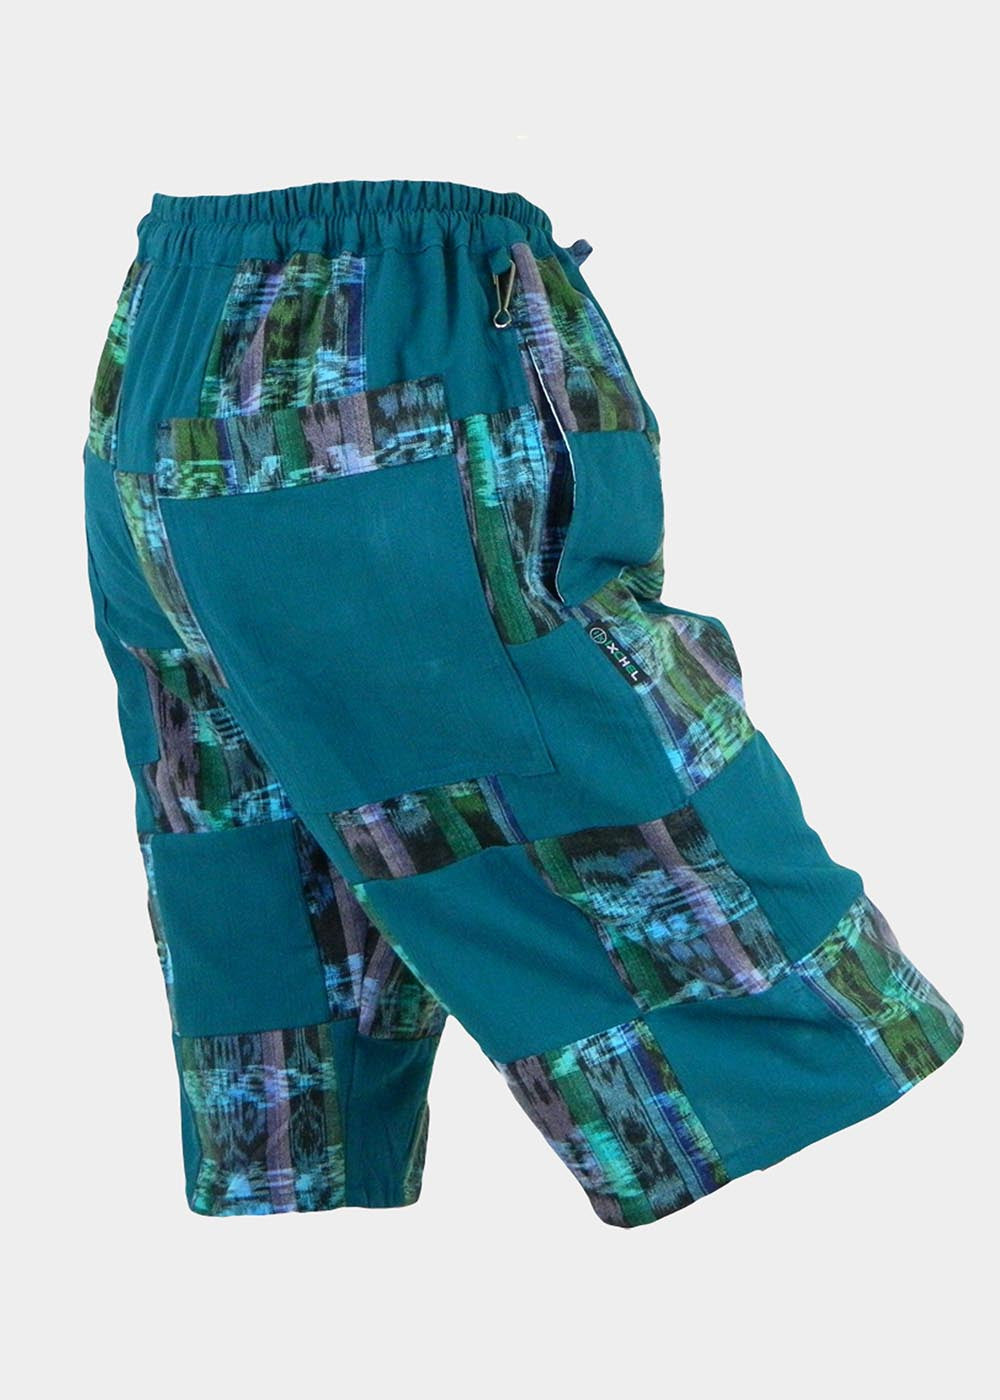 Patchwork Shorts in cotton summer cloth and hand woven ikat